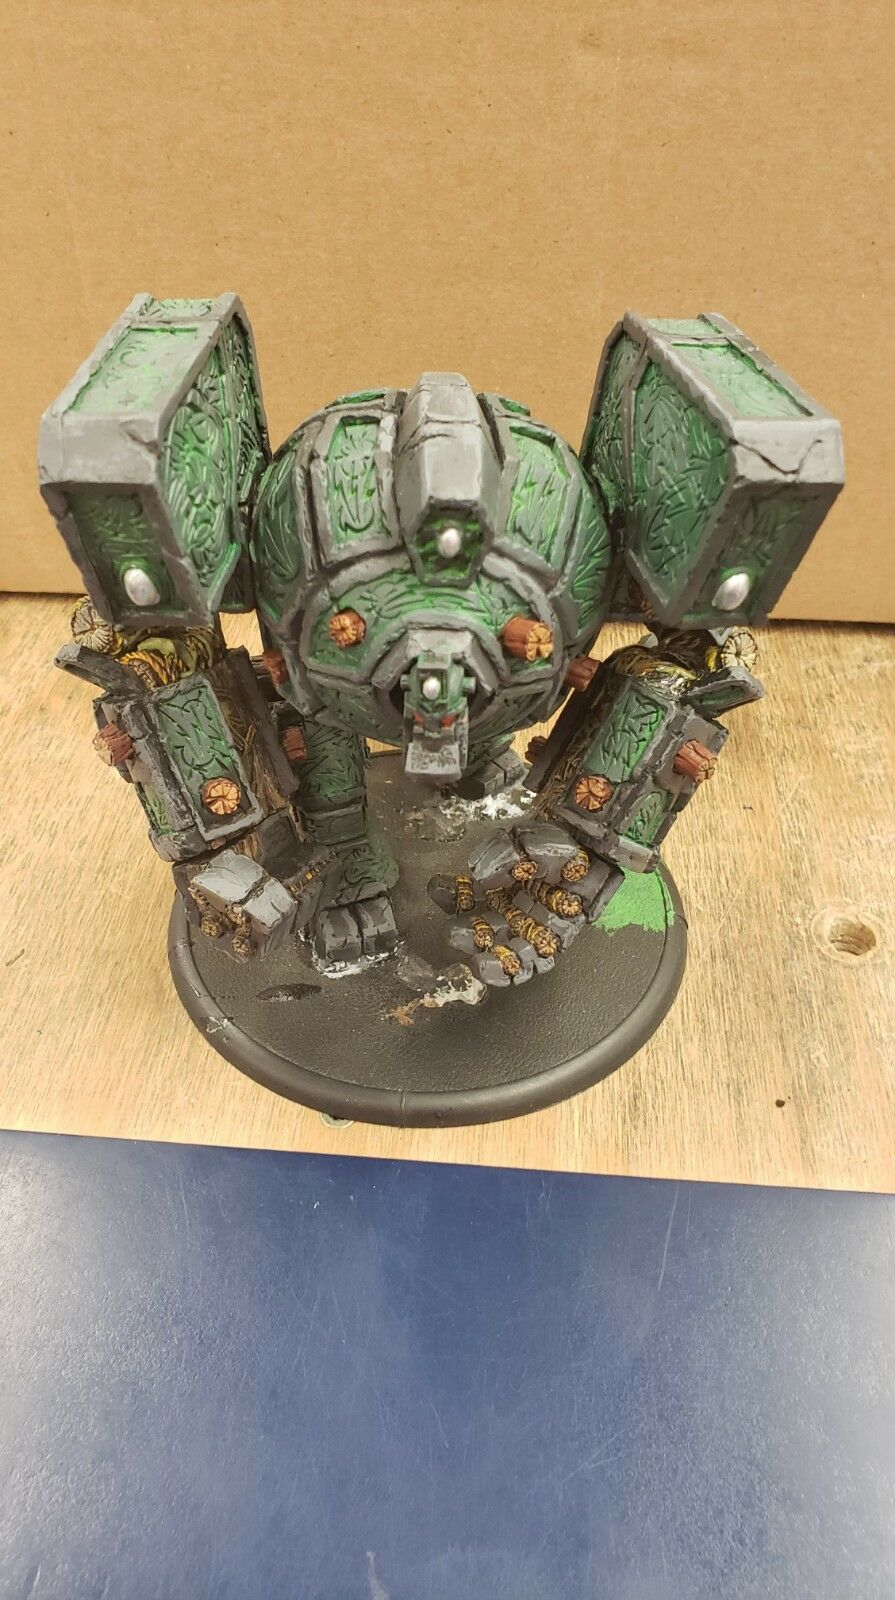 Hordes  Circle Orbgolds Woldwrath Gargantuan Painted and Assembled